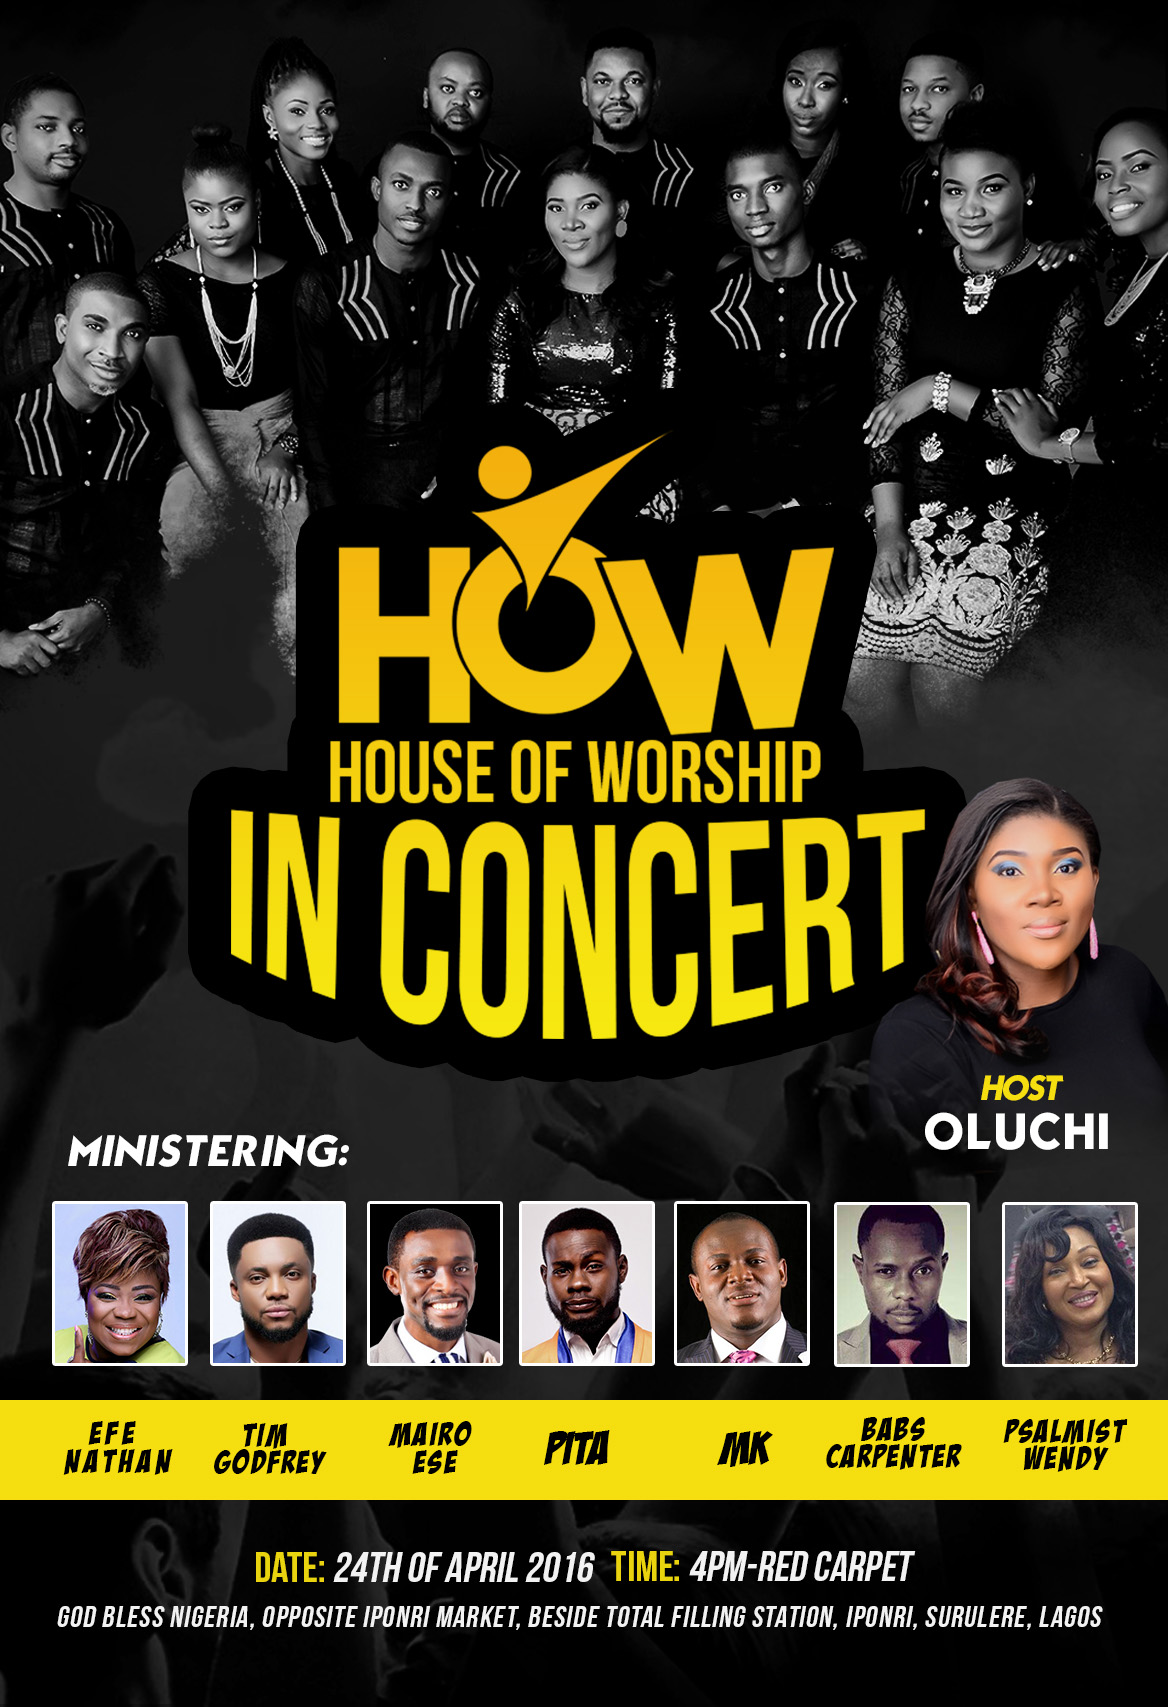 House Of Worship (HOW) In Concert Featuring Efe Nathan, Tim Godfrey, Mairo Ese, PITA, MK, Babs Carpenter & Psalmist Wendy [ @amenradio1 @howcrewlive]